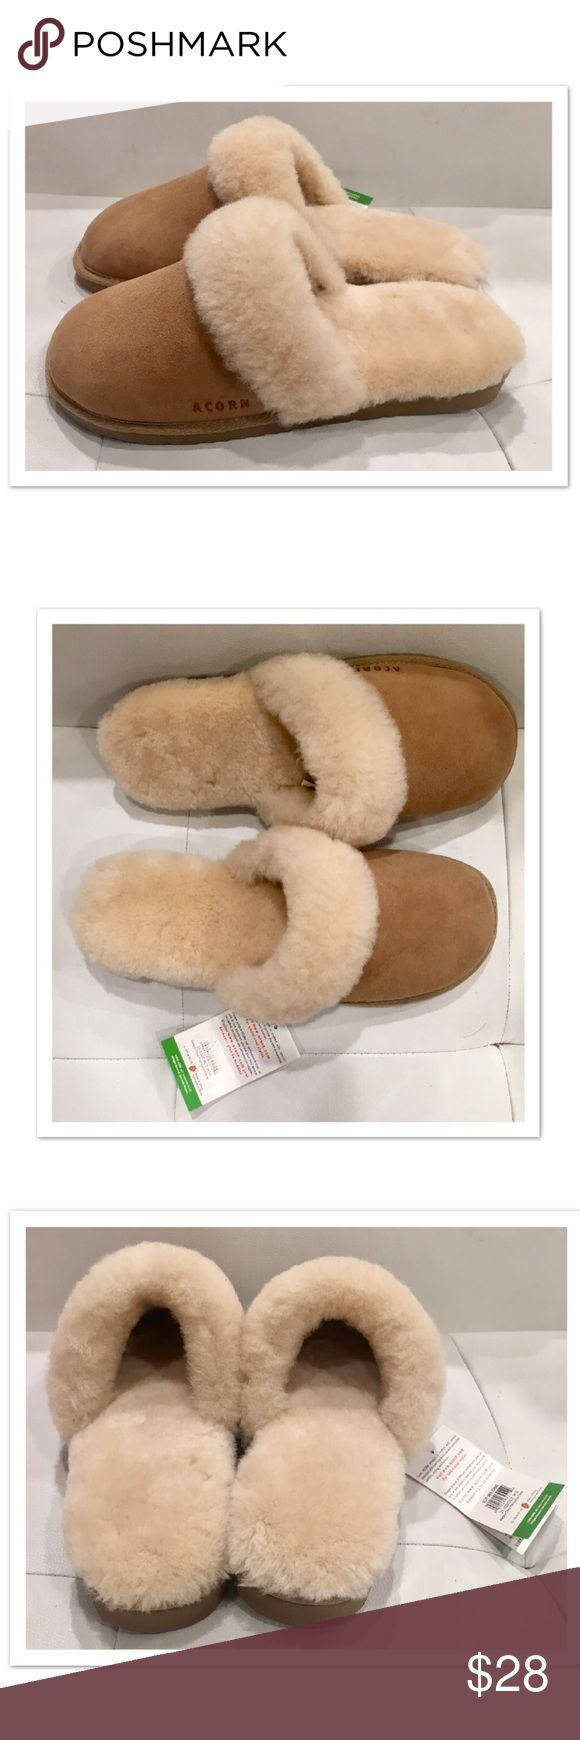 Acorn Shearling Slippers Genuine suede and sheepskin slippers. Size 10W tag inside slippers. Brand new. Never worn. Acorn Shoes Slippers